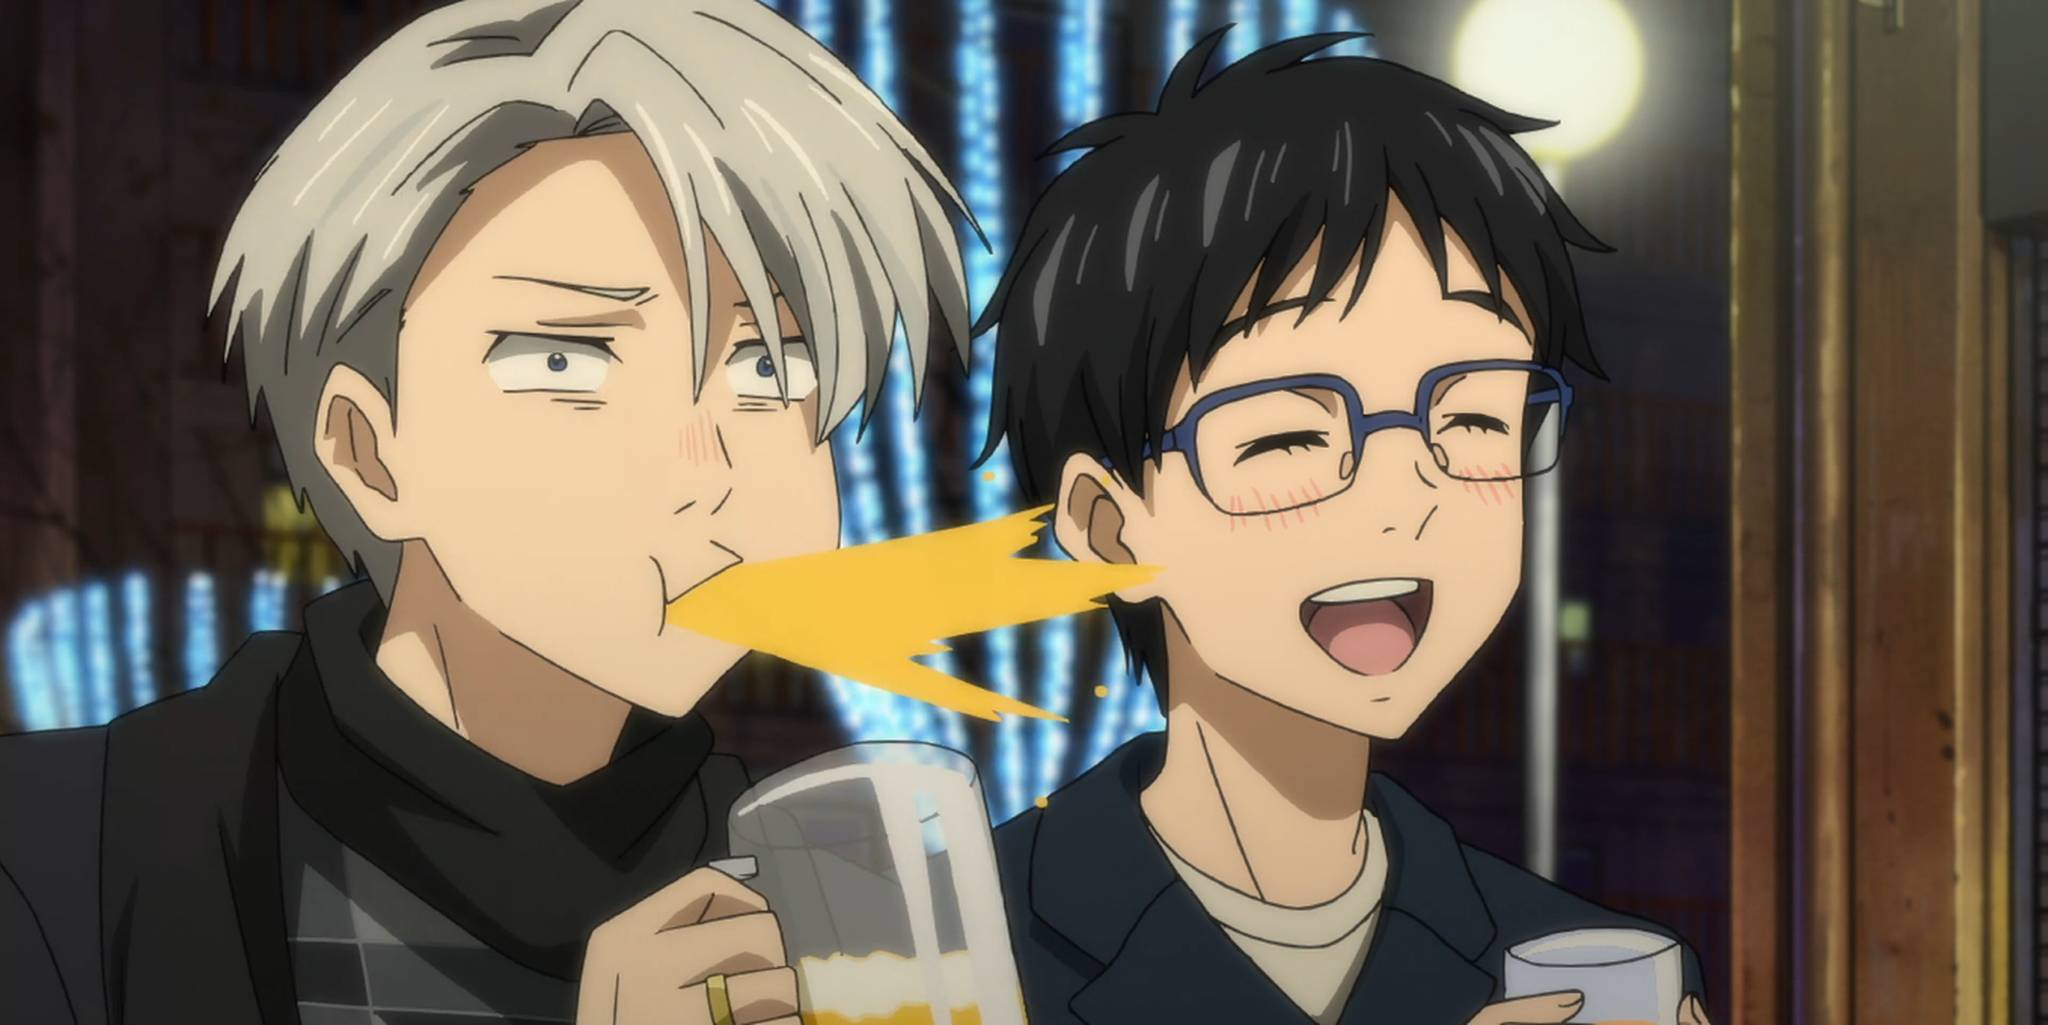 How To Remove Old Wallpaper That Is Already Falling Down Yuri On Ice Drops A Huge Plot Twist That Changes Everything